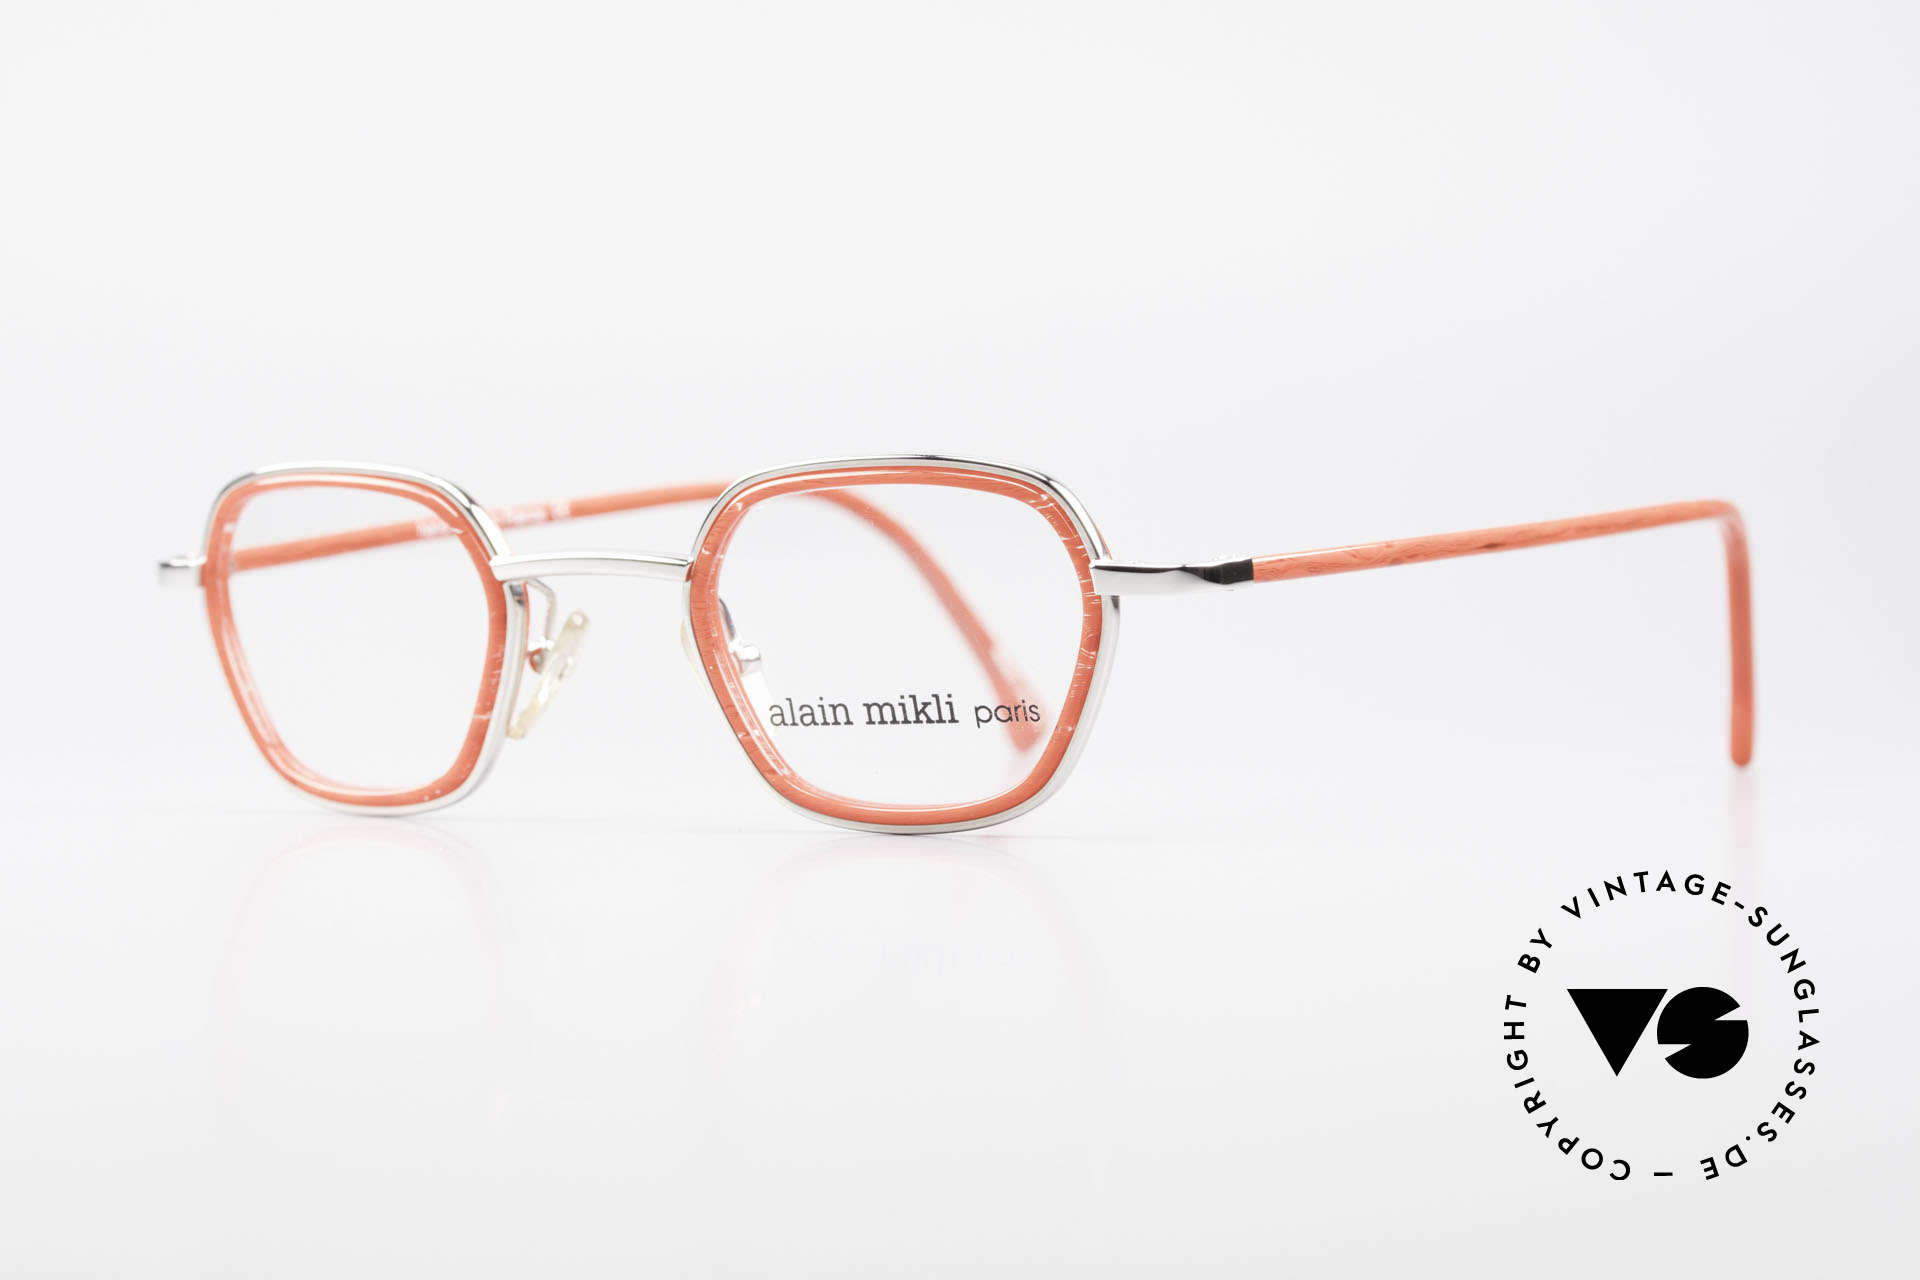 Alain Mikli 1642 / 1006 Vintage Eyeglasses Mikli Red, an extraordinary model for ladies (truly UNIQUE!), Made for Women